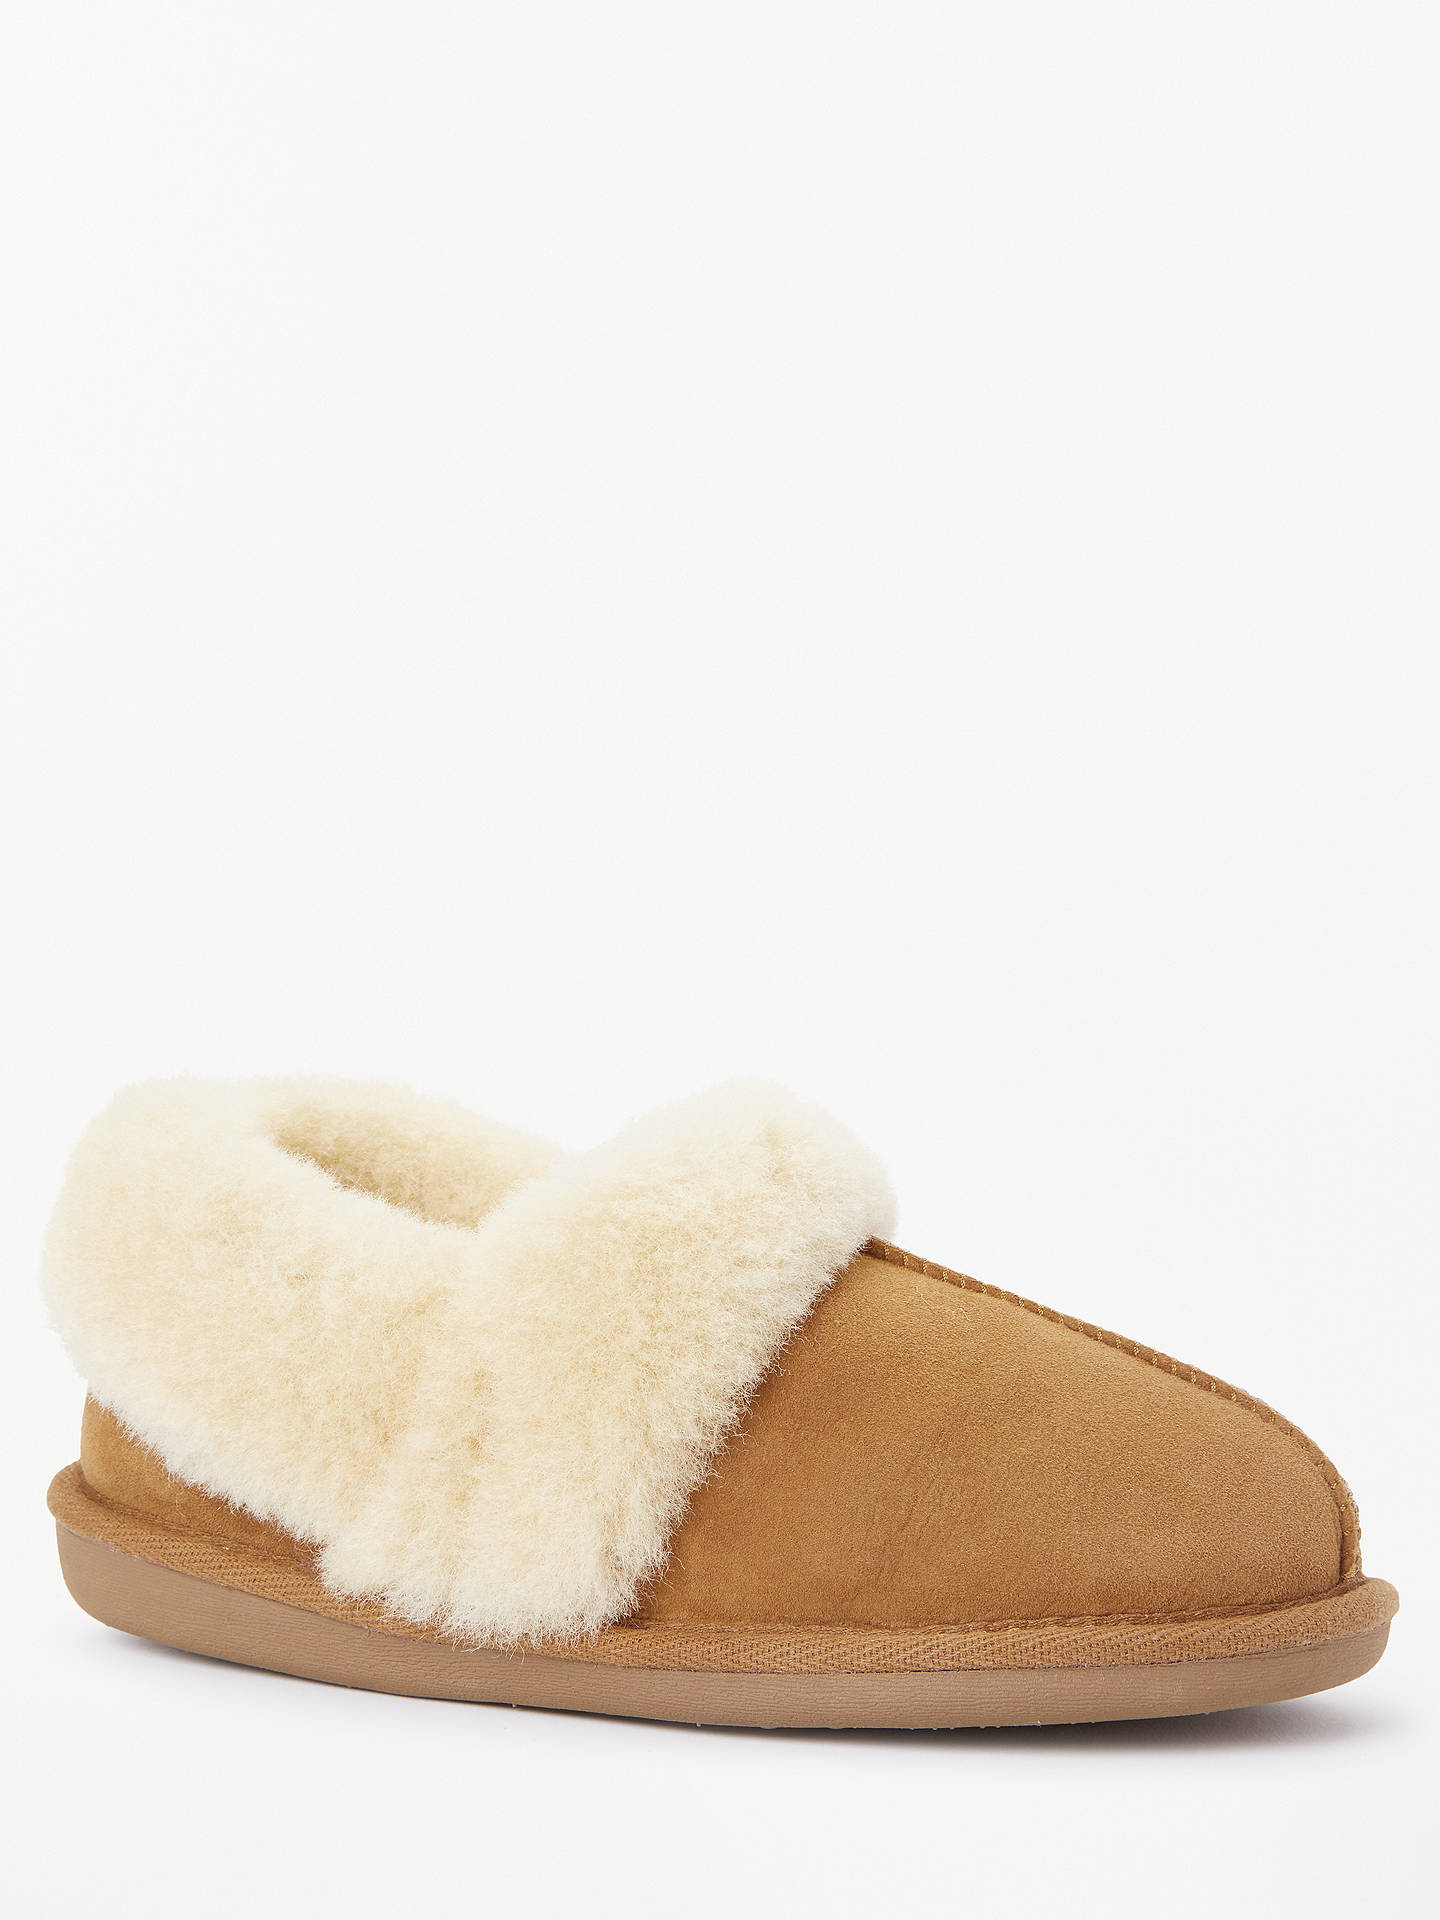 BuyJohn Lewis & Partners Comfort Cuff Sheepskin Slippers, Chestnut, 3 Online at johnlewis.com